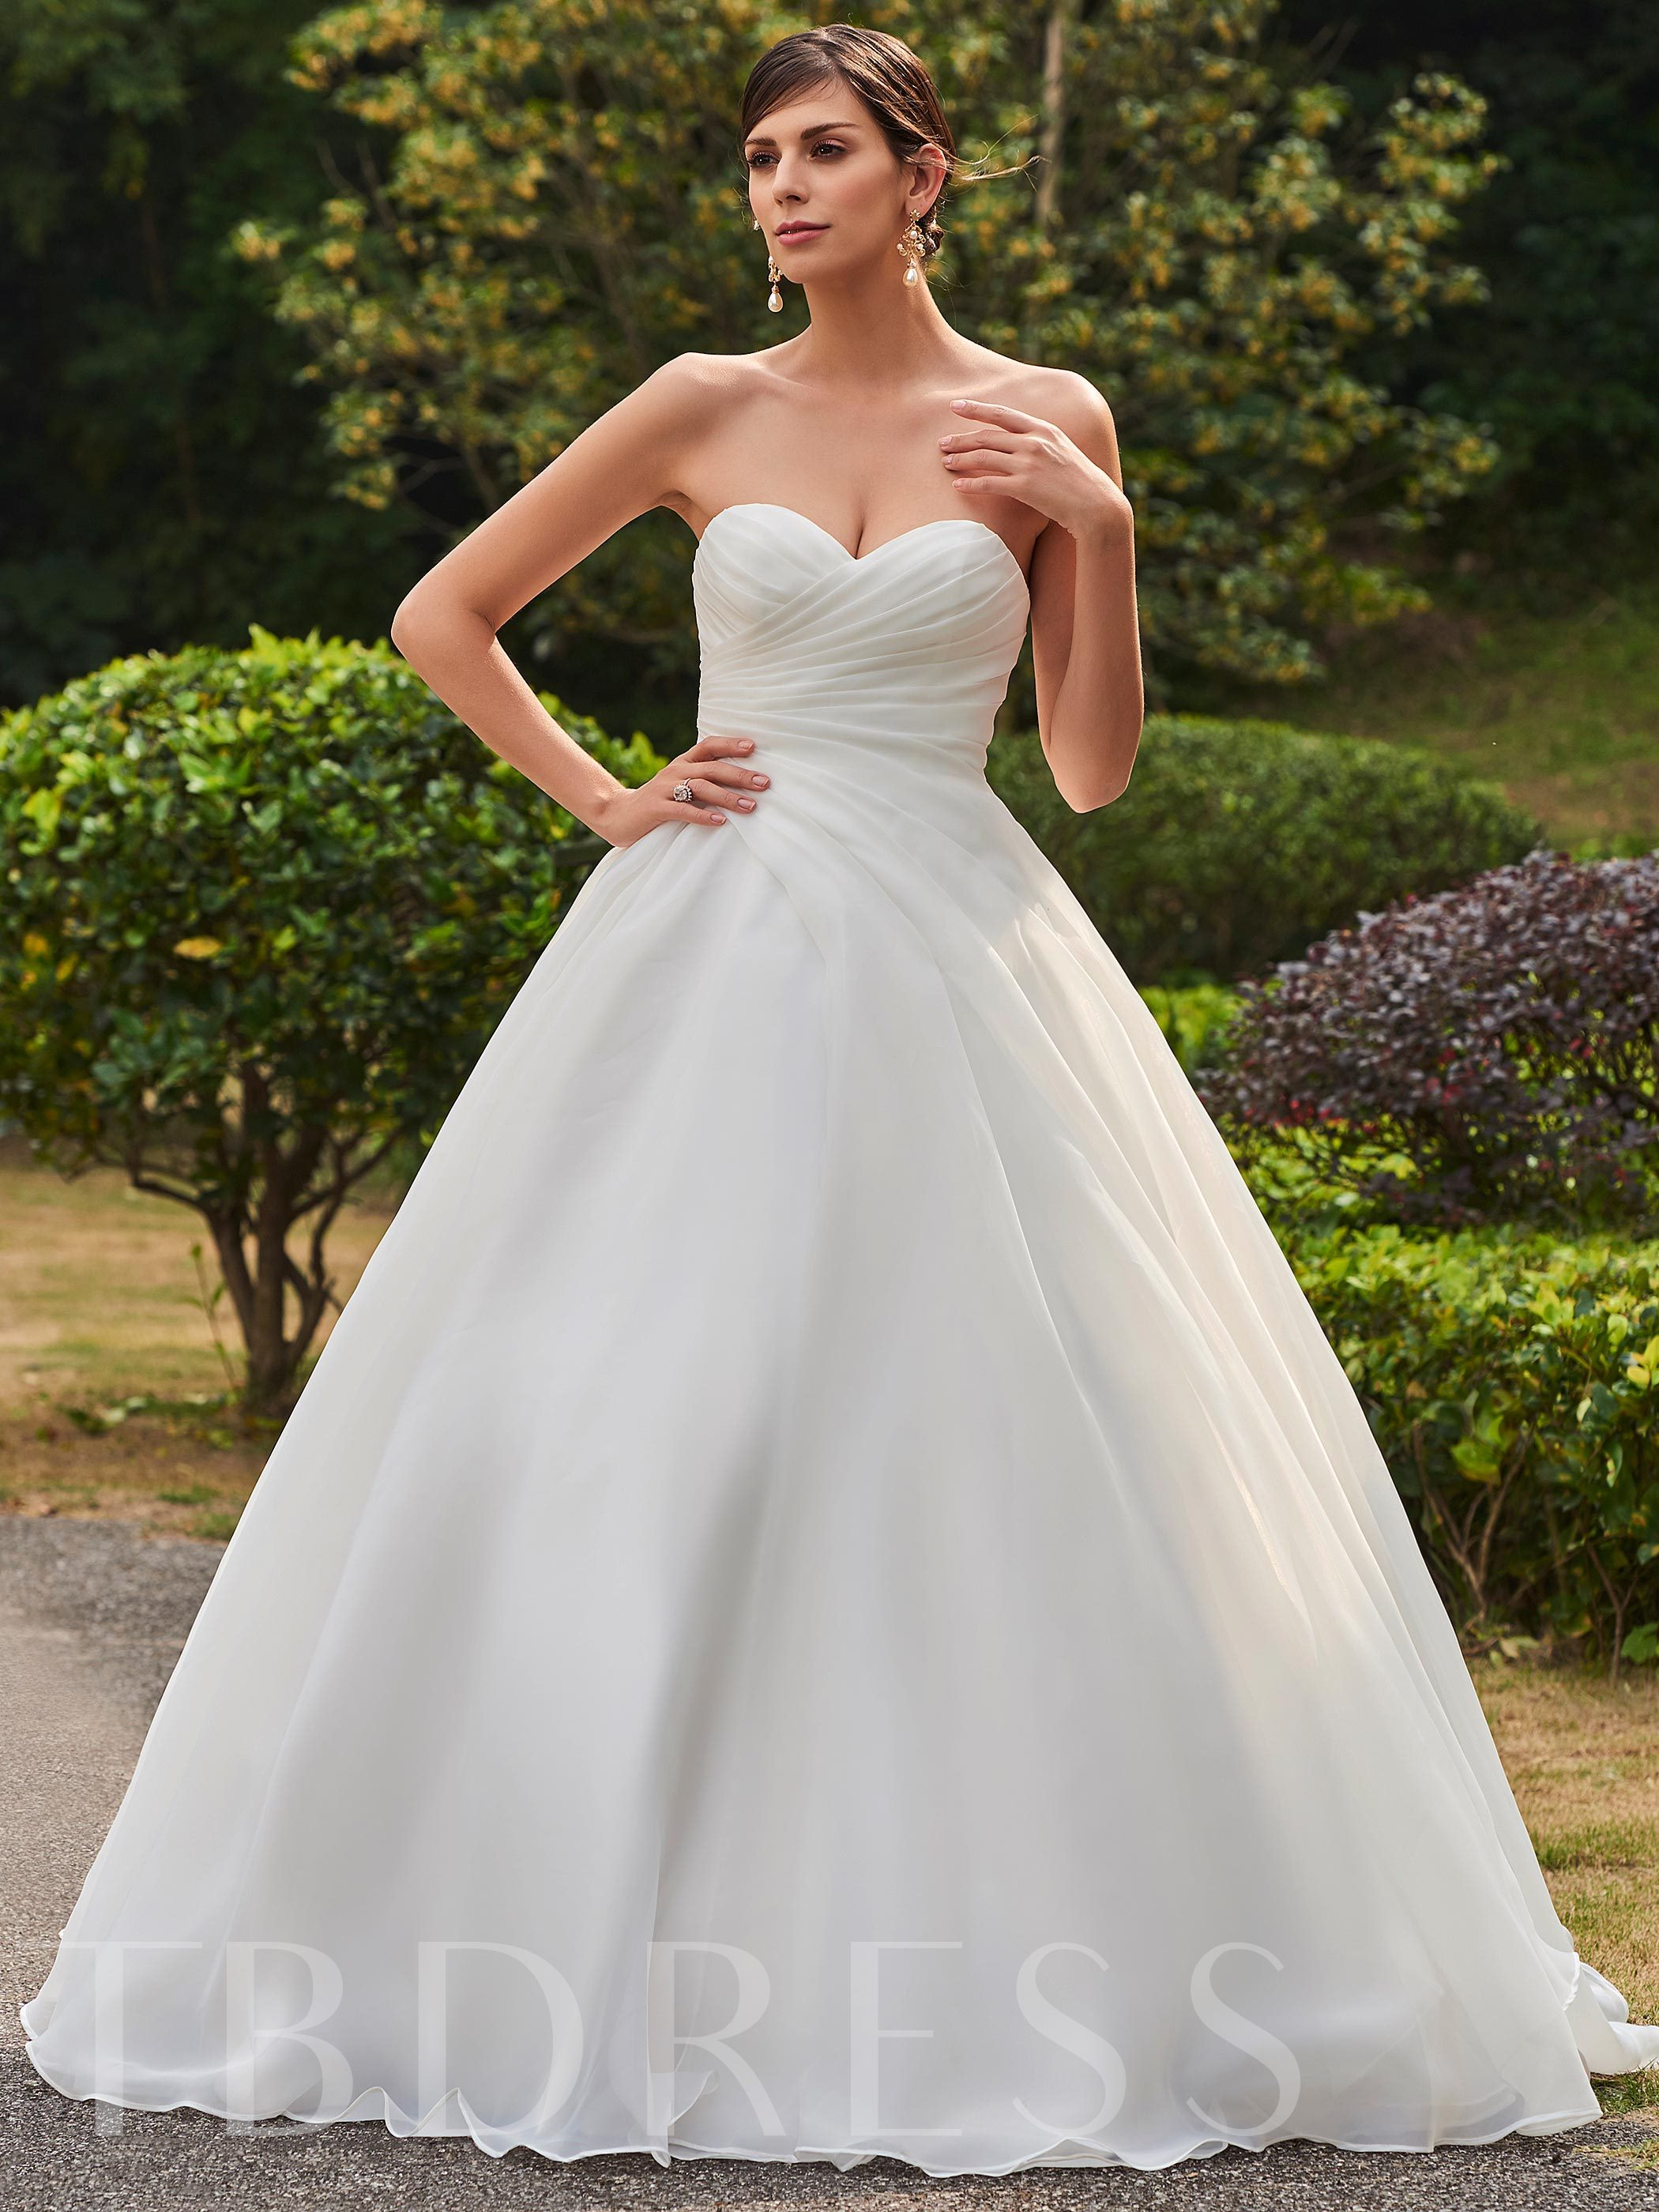 Ruched Zipper-Up Floor-Length Ball Gown Wedding Dress 12699409